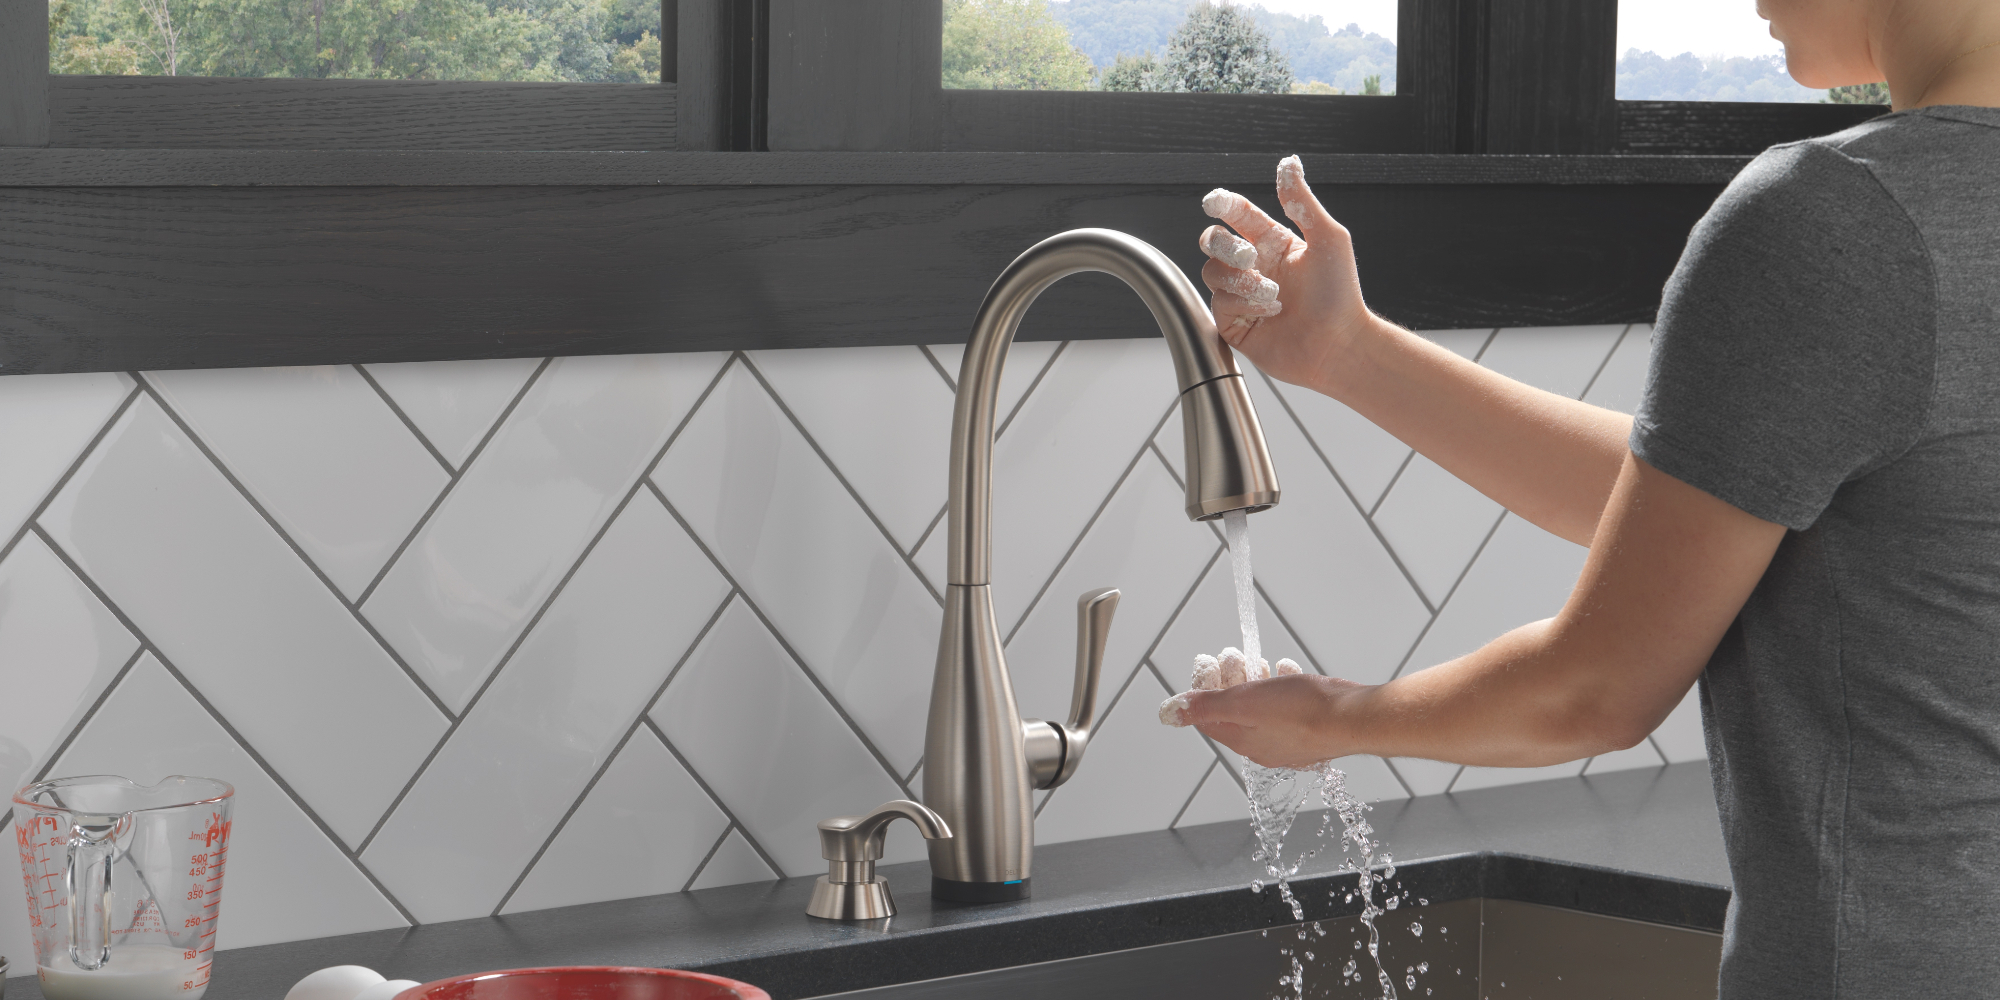 Making Hygienic Faucet And Sink Choices For Residential Comfort